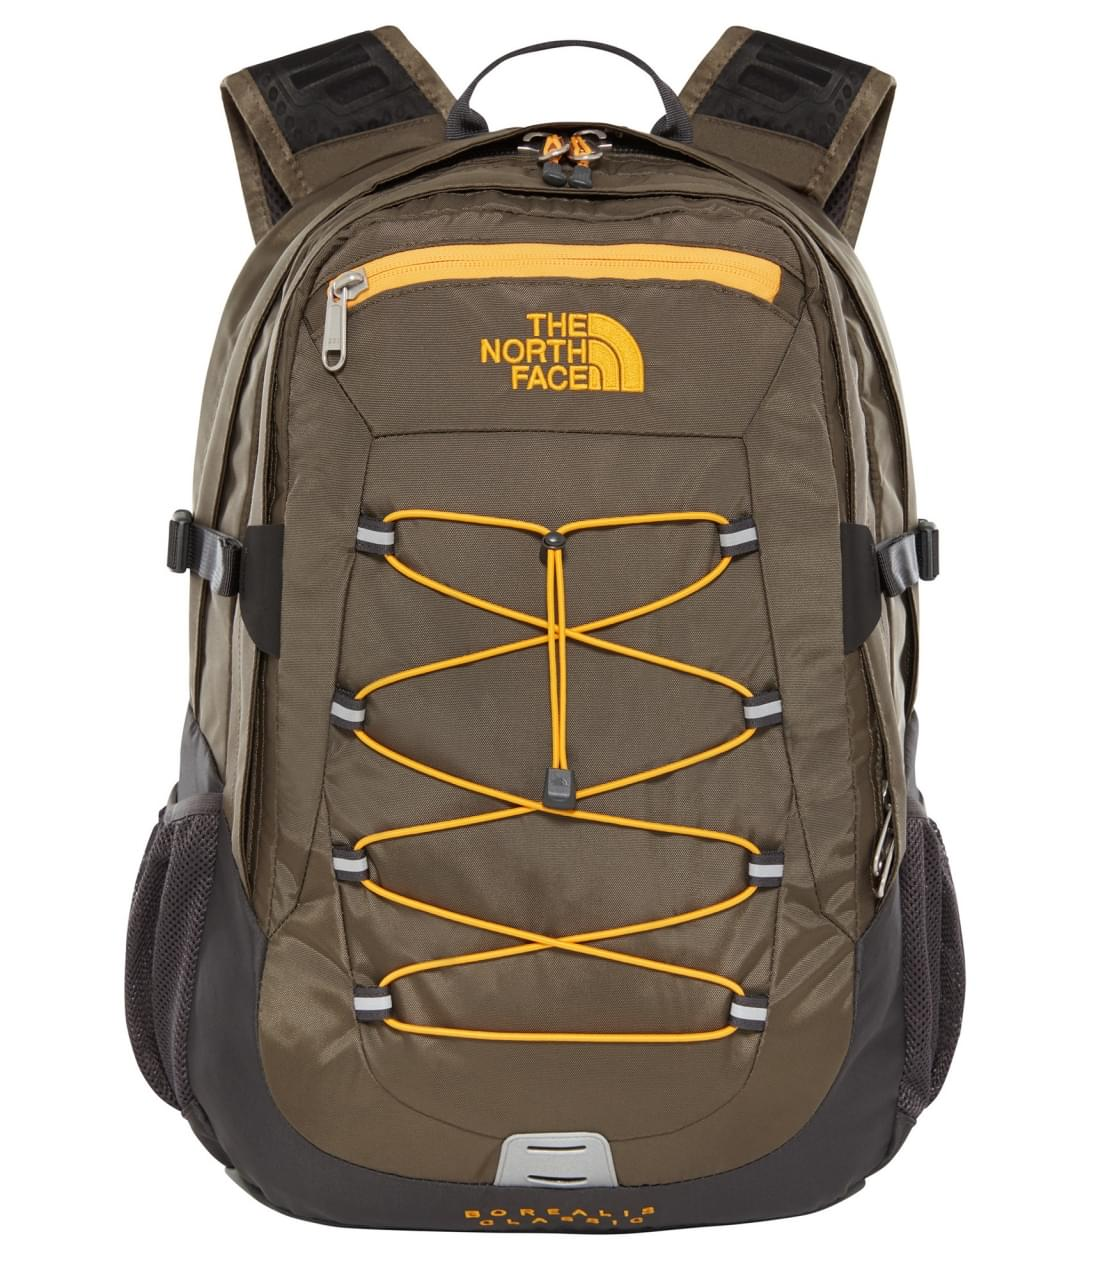 The North Face Borealis Classic Rugzak